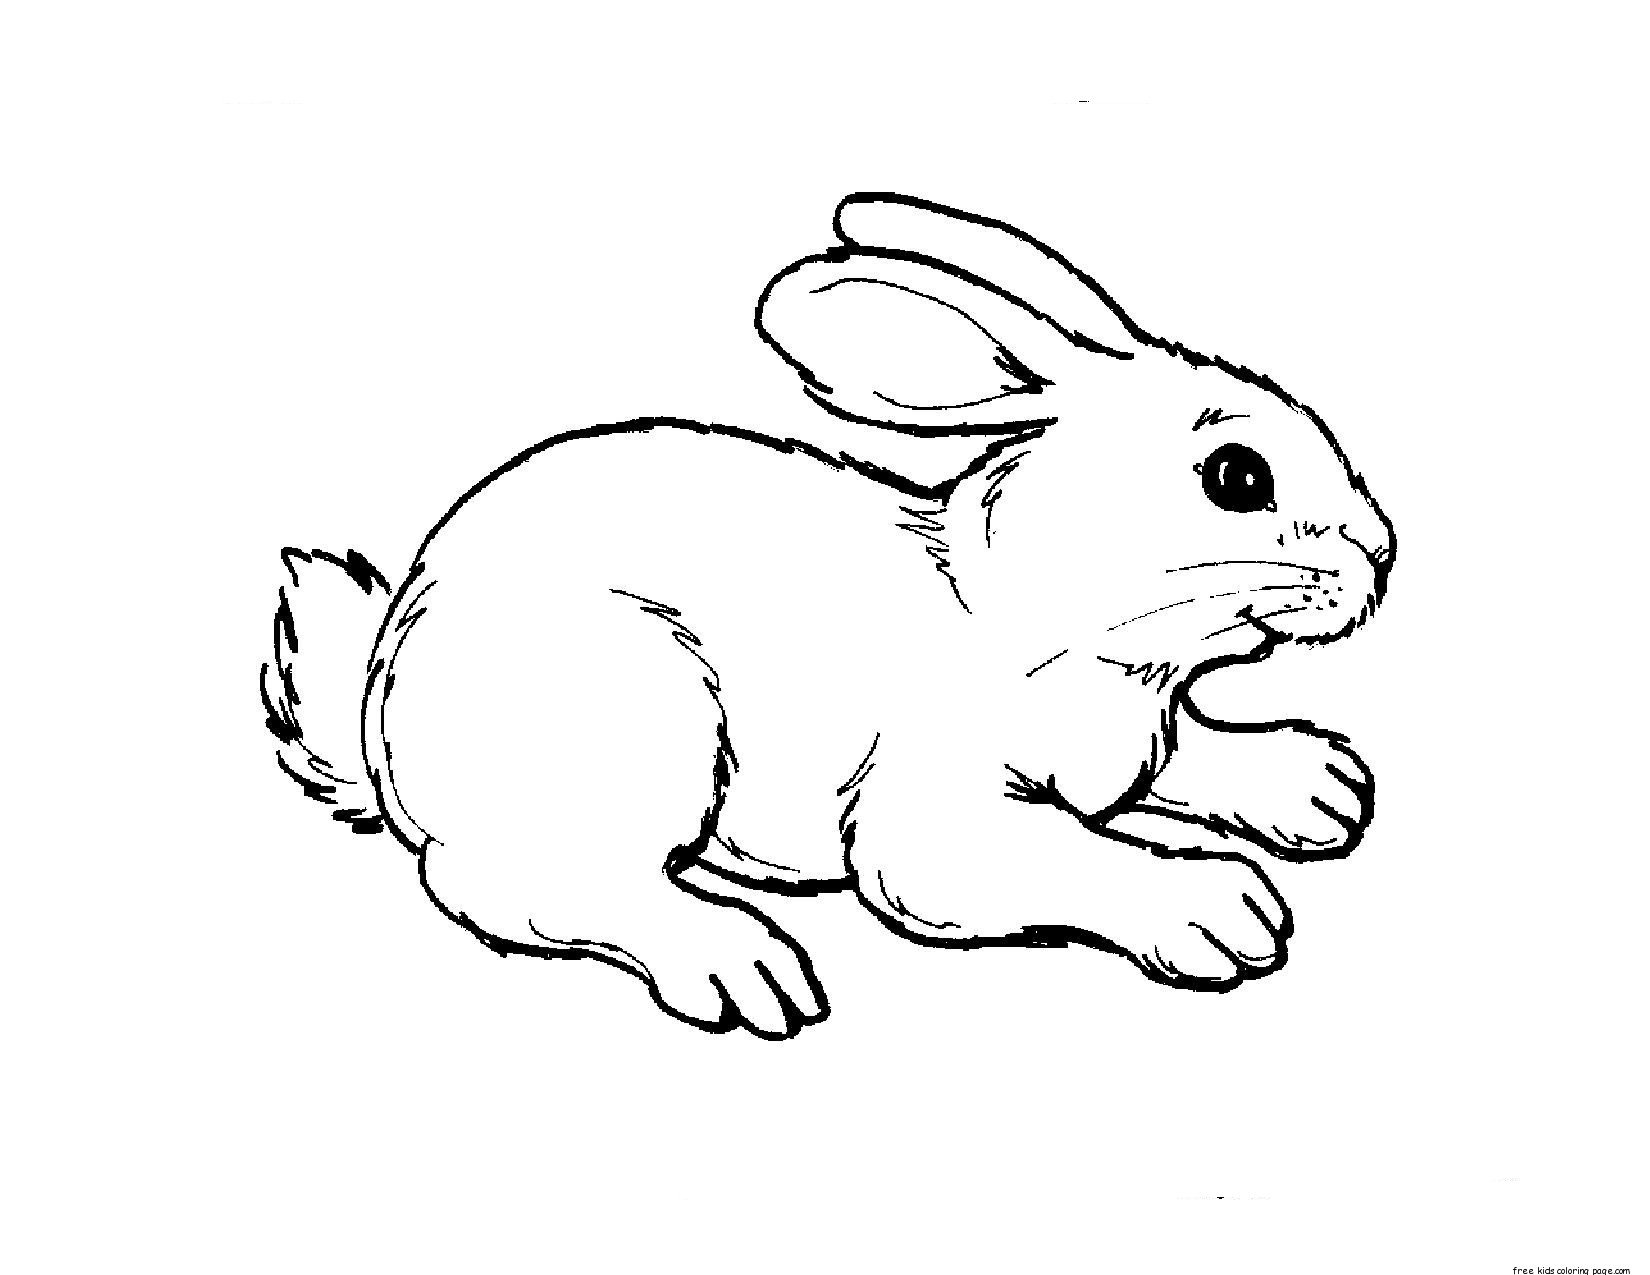 free animal coloring pages for kids safari coloring pages to download and print for free pages free animal coloring kids for